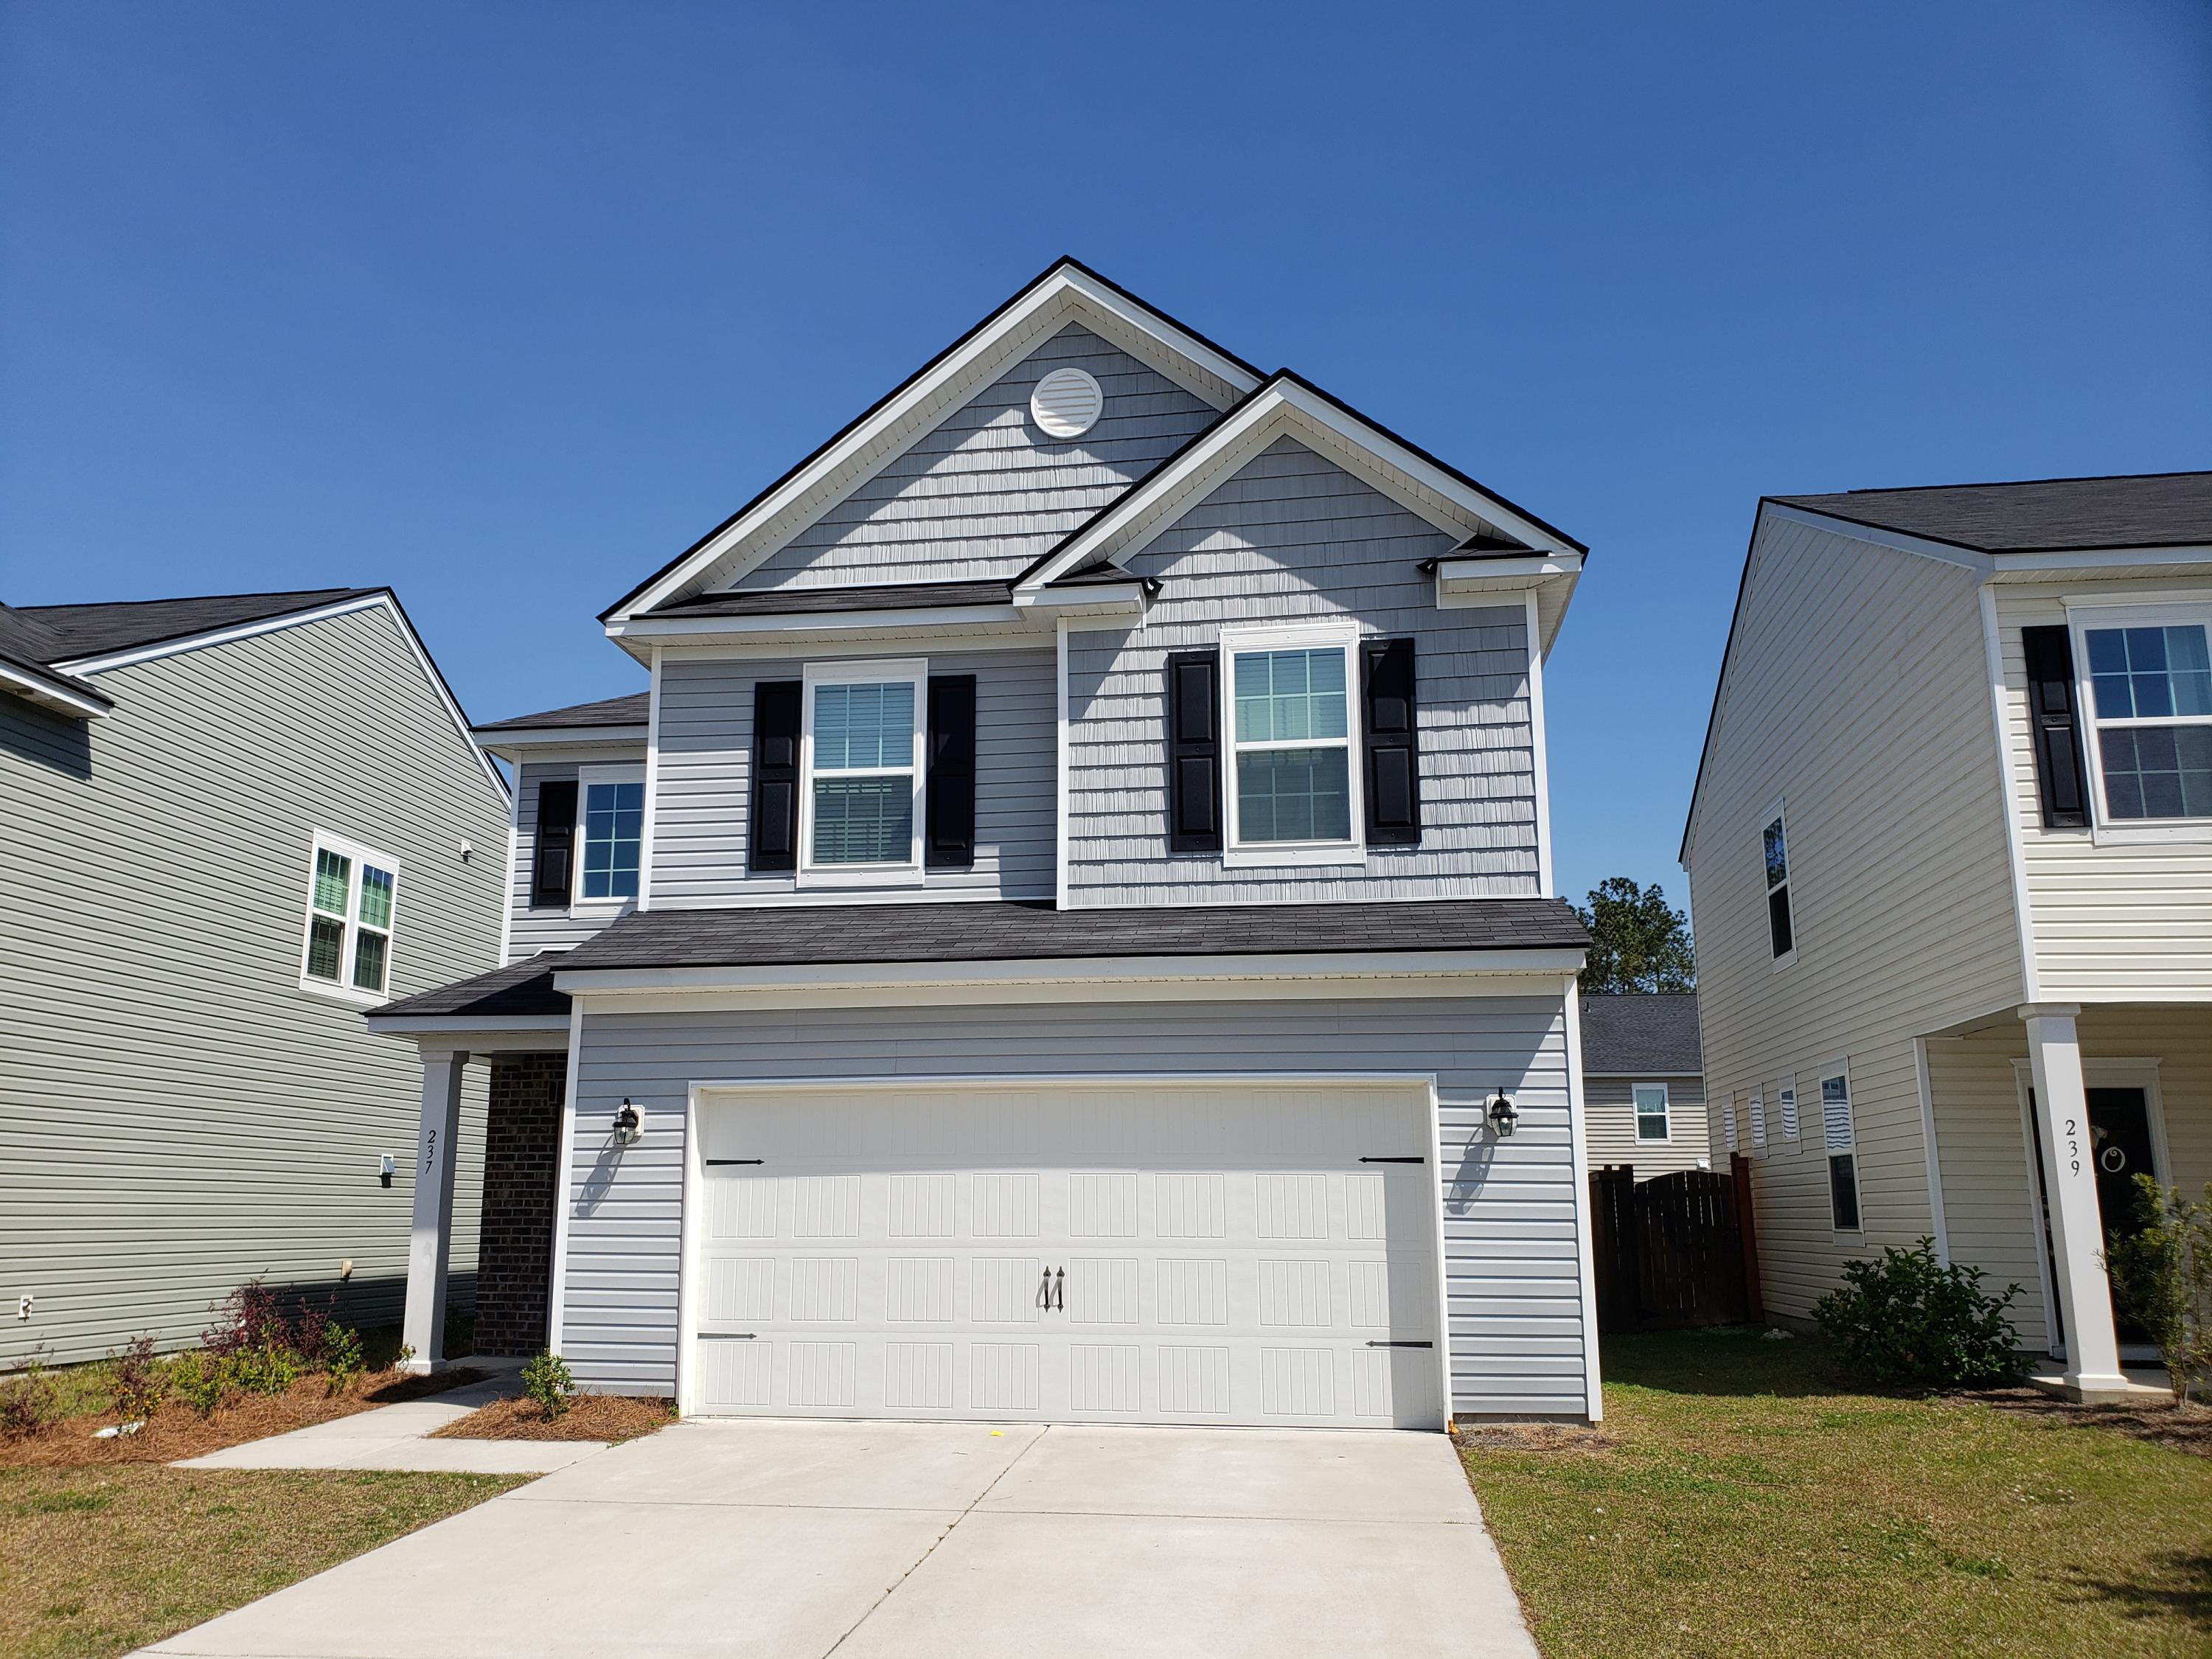 237 Swamp Creek Lane Moncks Corner, SC 29461